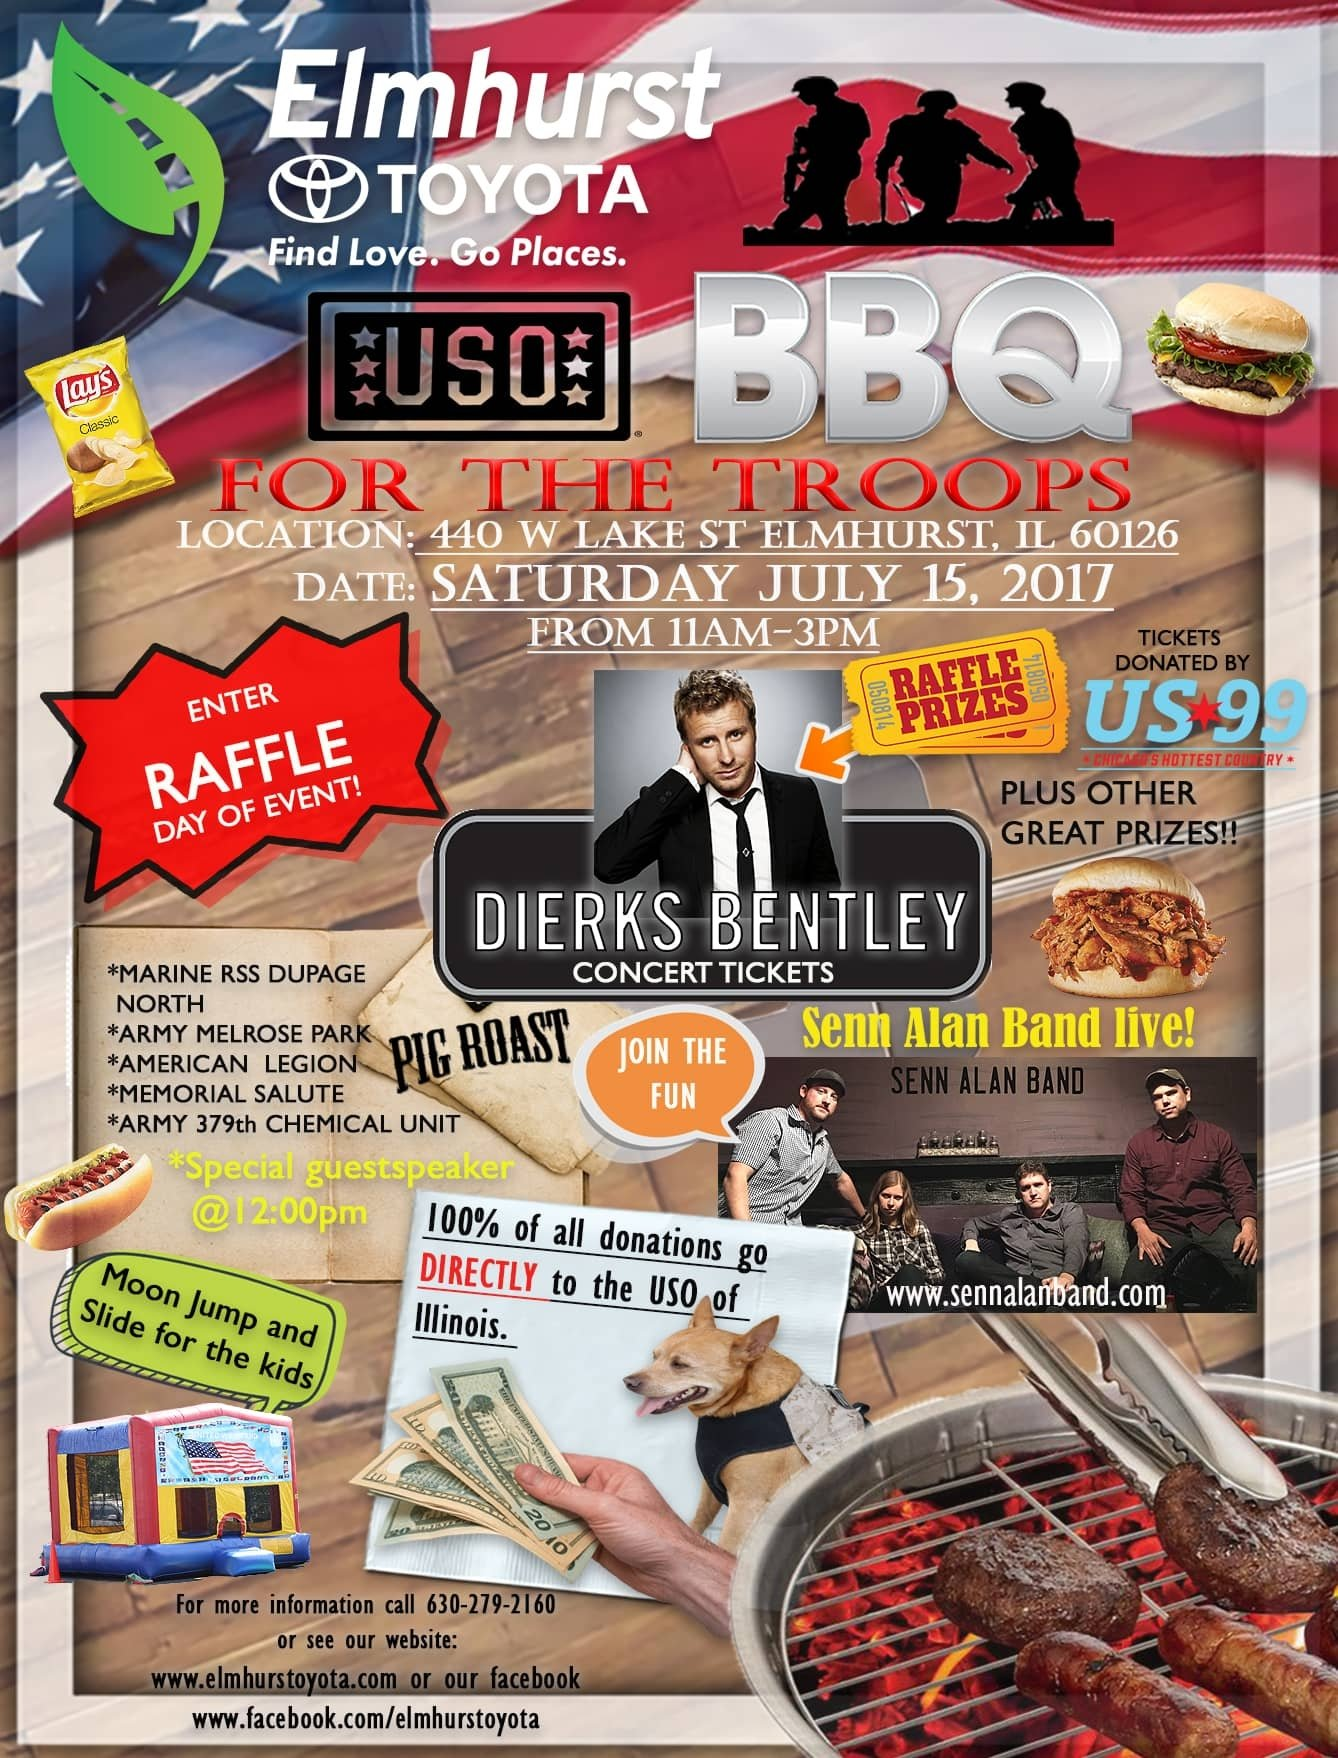 2017 USO BBQ for the Troops Flyer